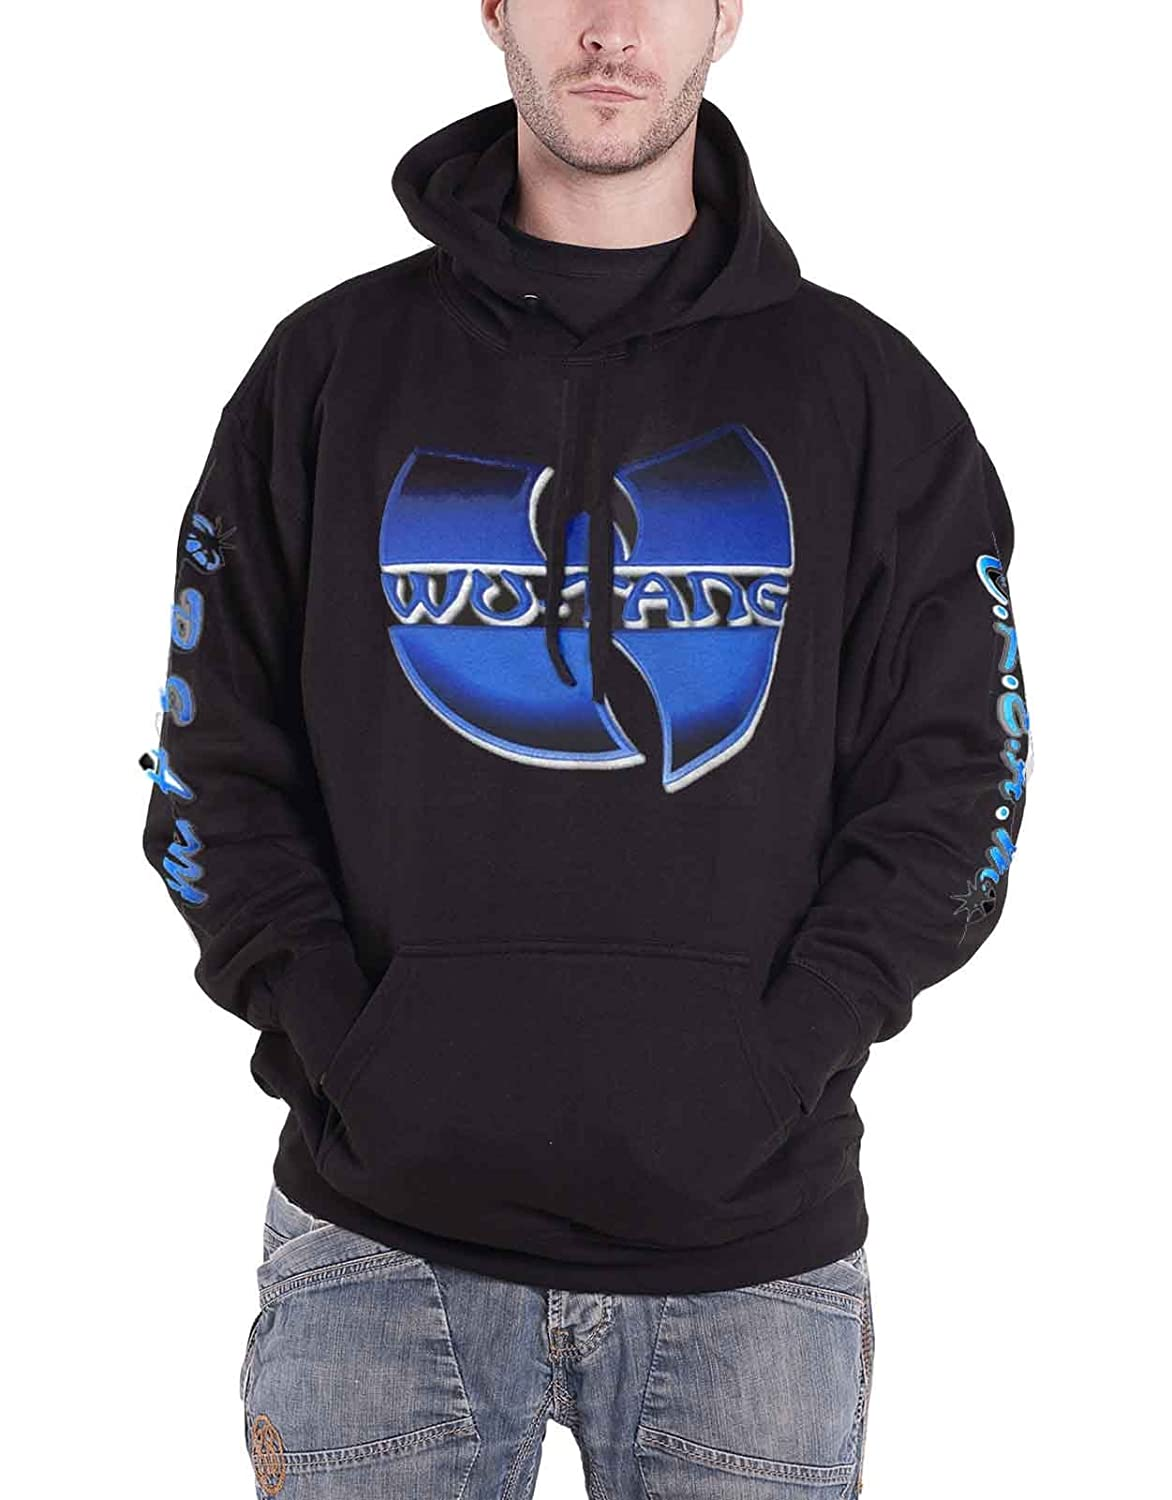 Wu-Tang Clan Hoodie Band Logo C.R.E.A.M. New Official Mens Black Pullover